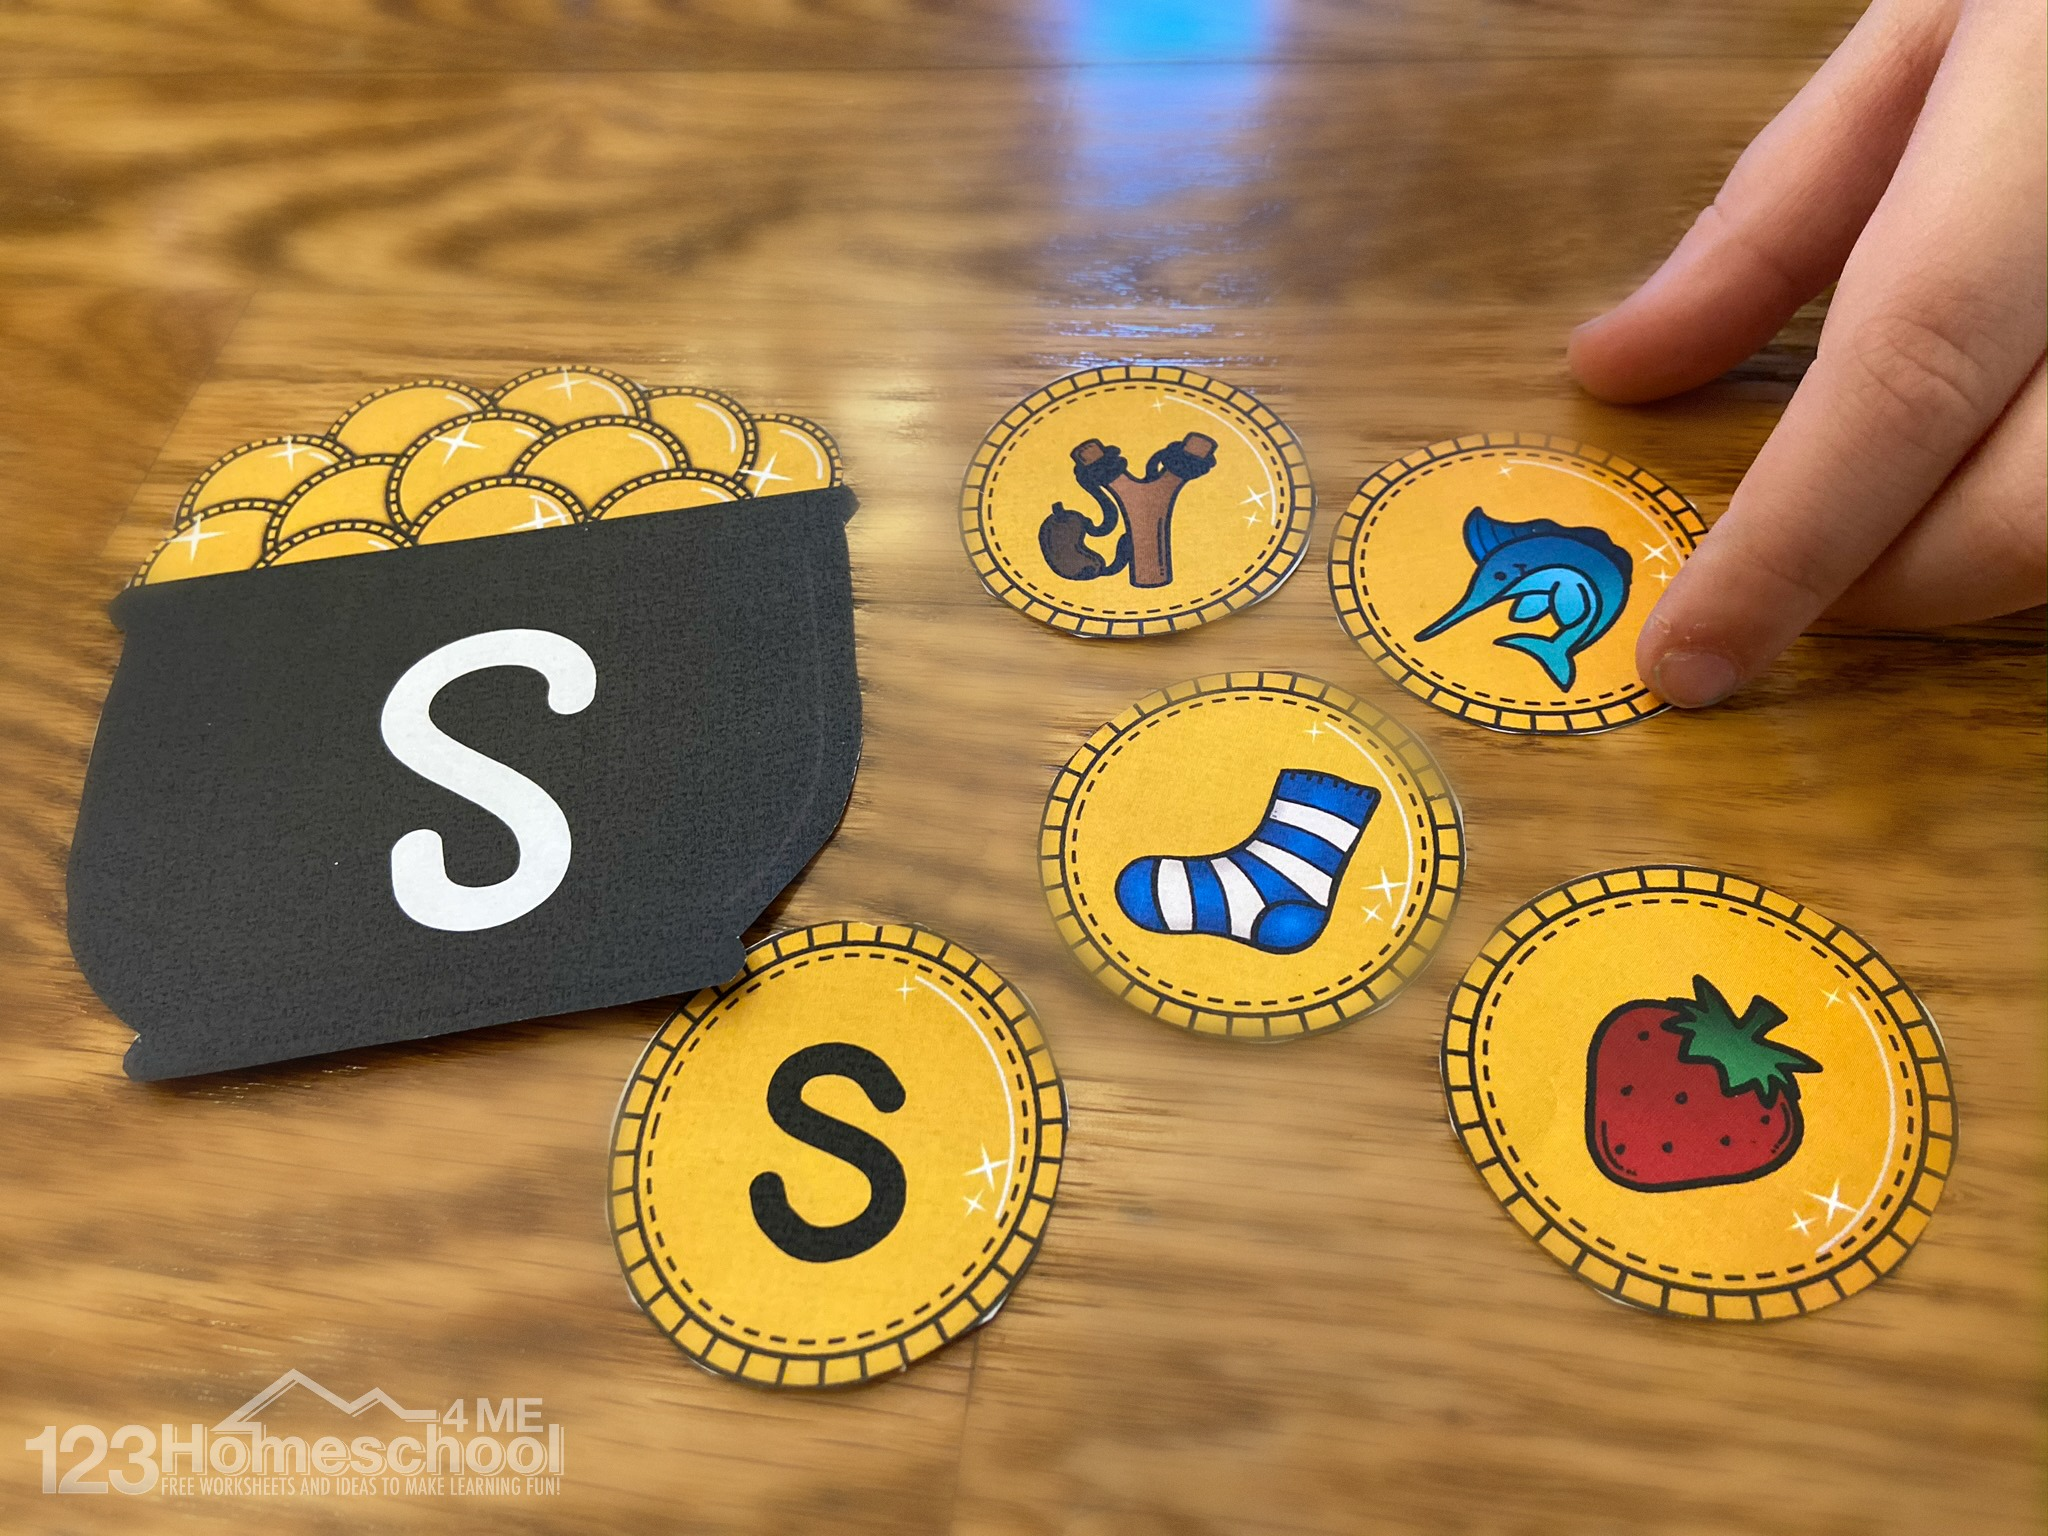 Free Pot Of Gold Letter Sounds Game